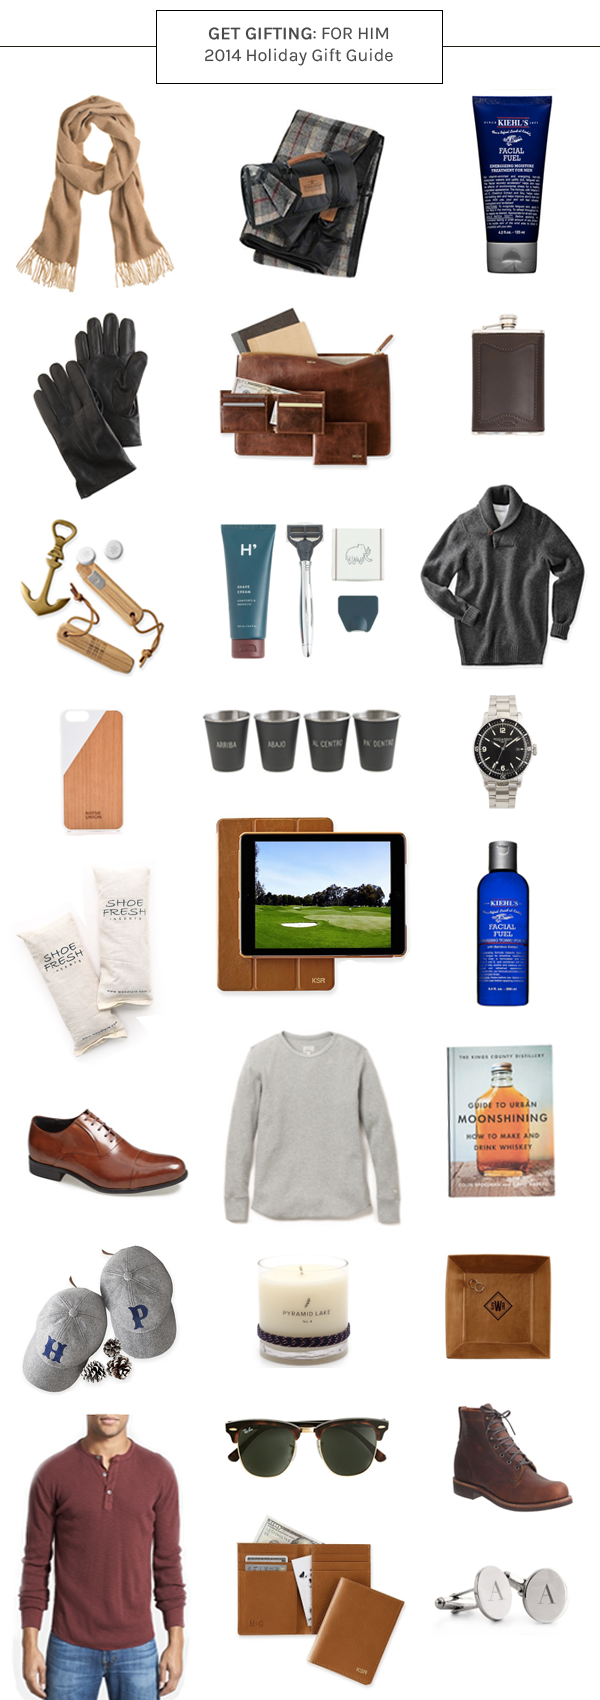 Best Gifts for Him | B stuff | Pinterest | Gifts, Christmas gifts ...